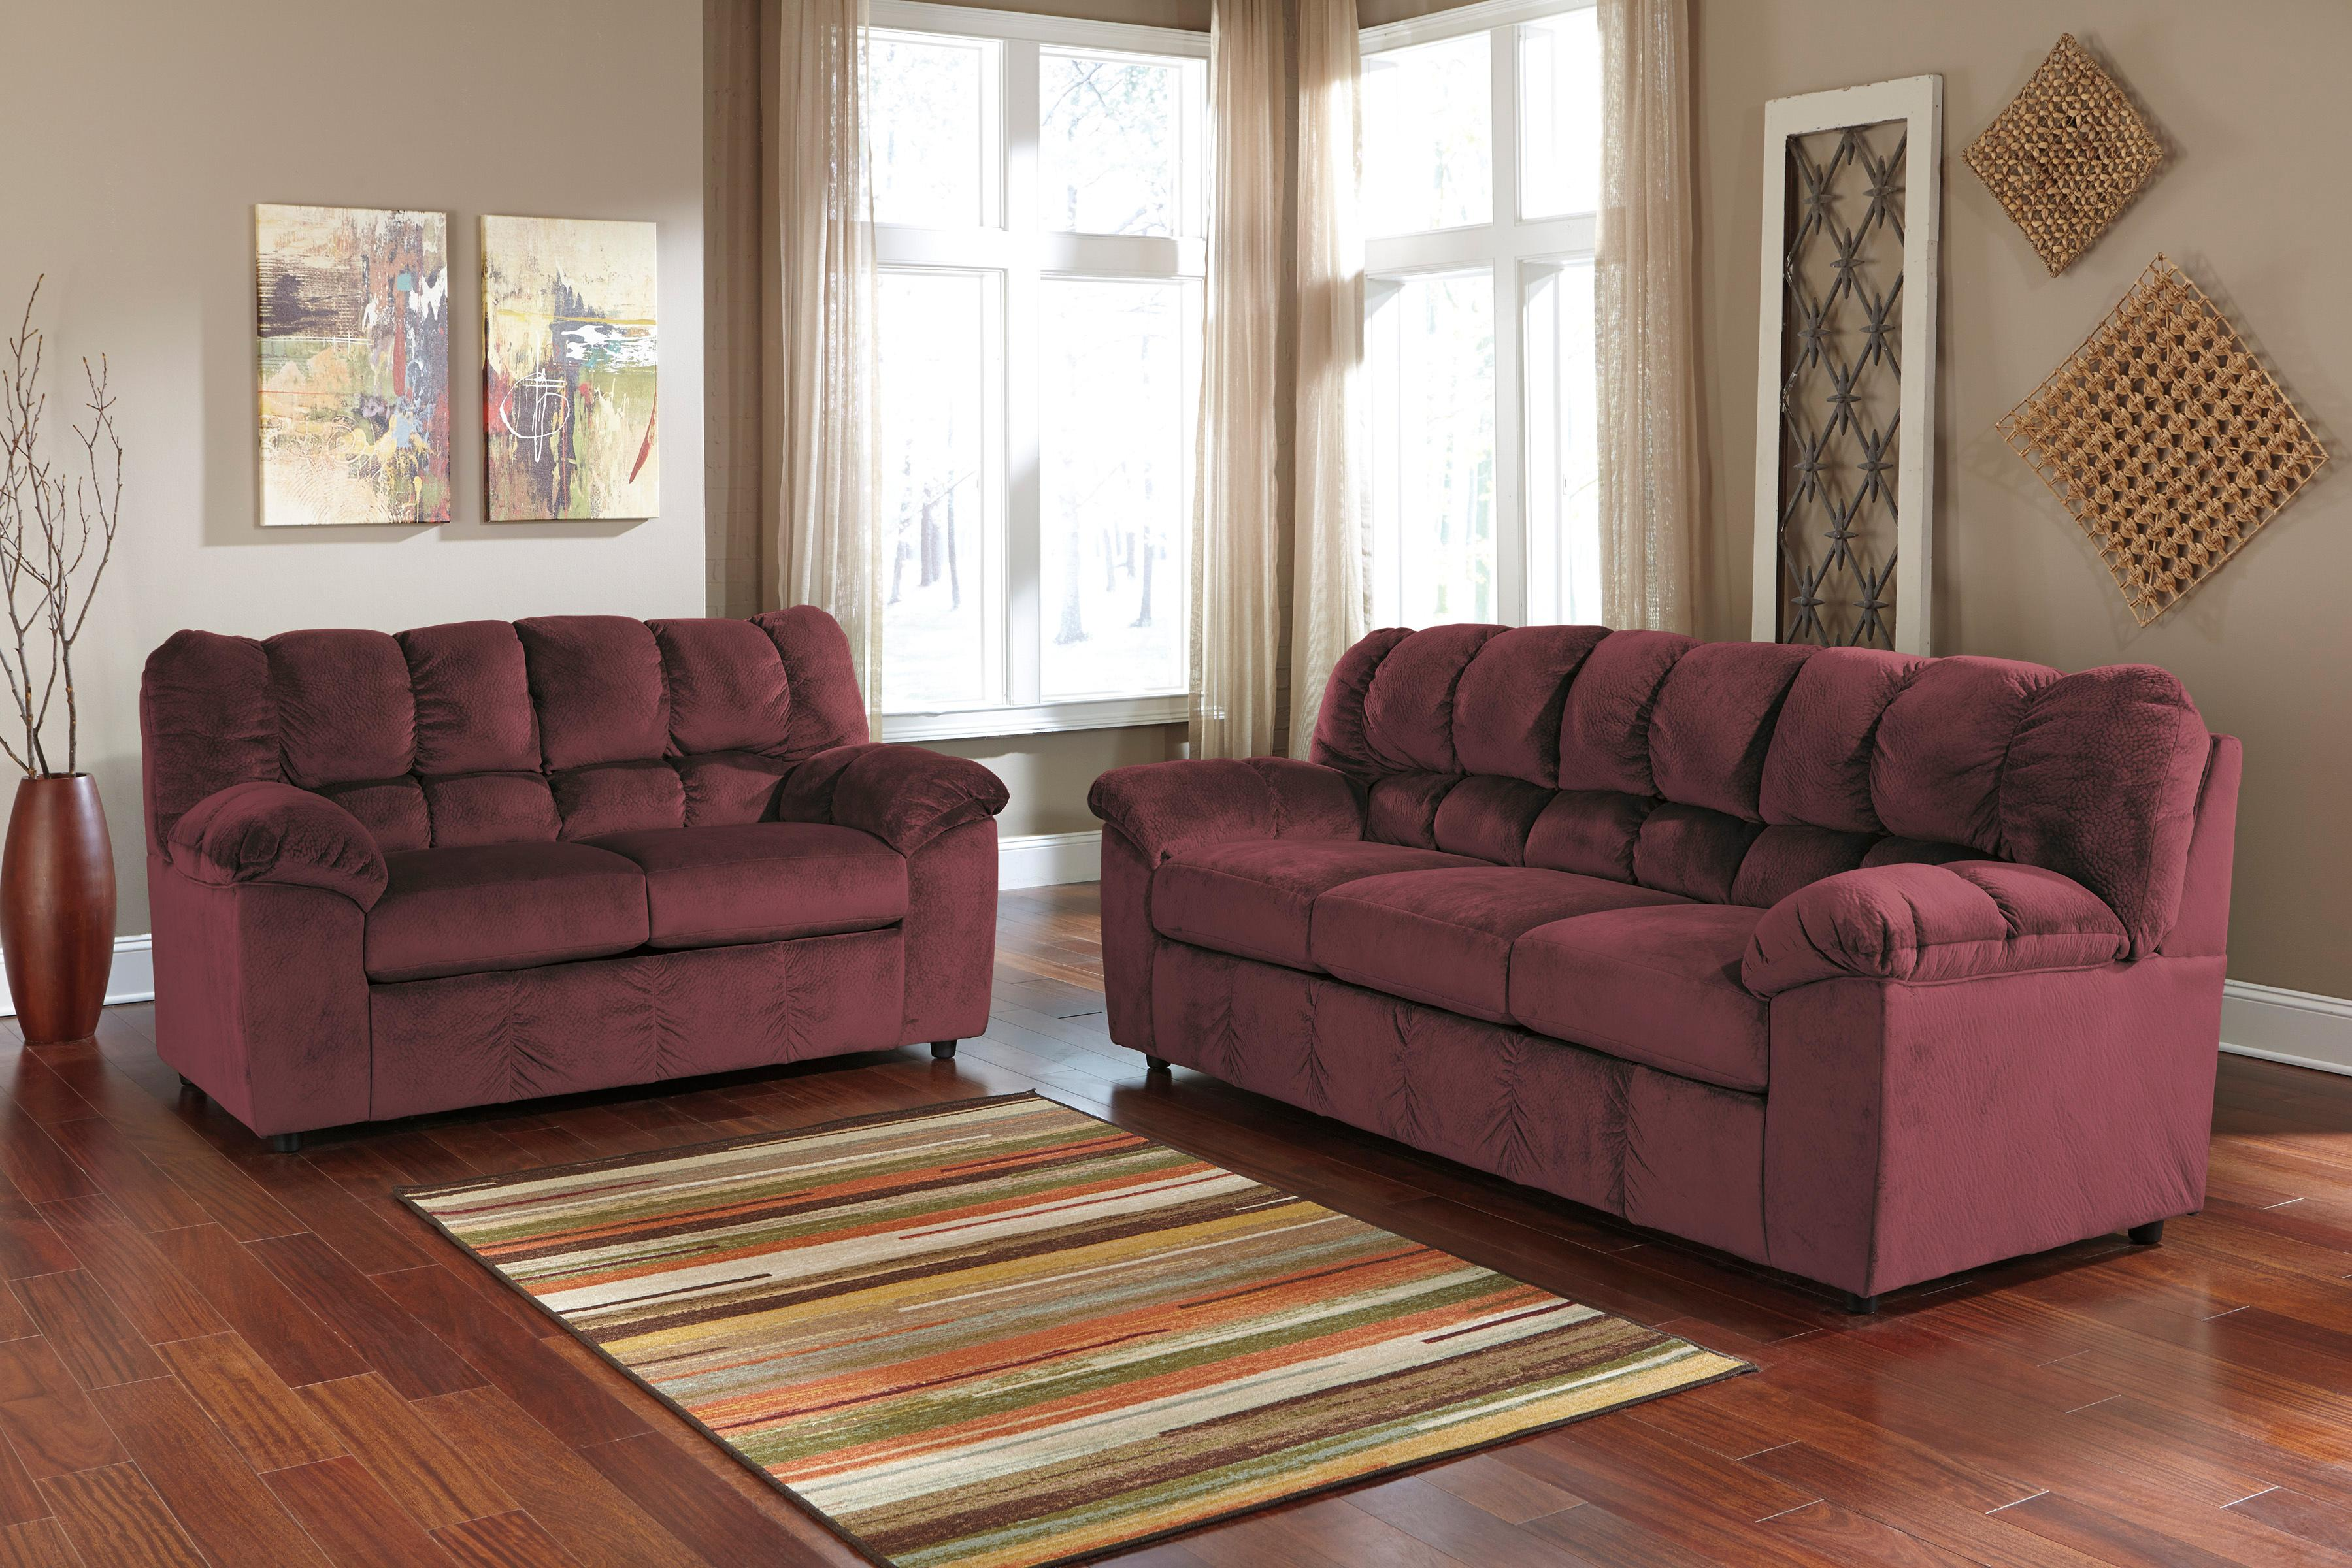 Signature Design By Ashley Julson   Burgundy Stationary Living Room Group    Item Number: 26602